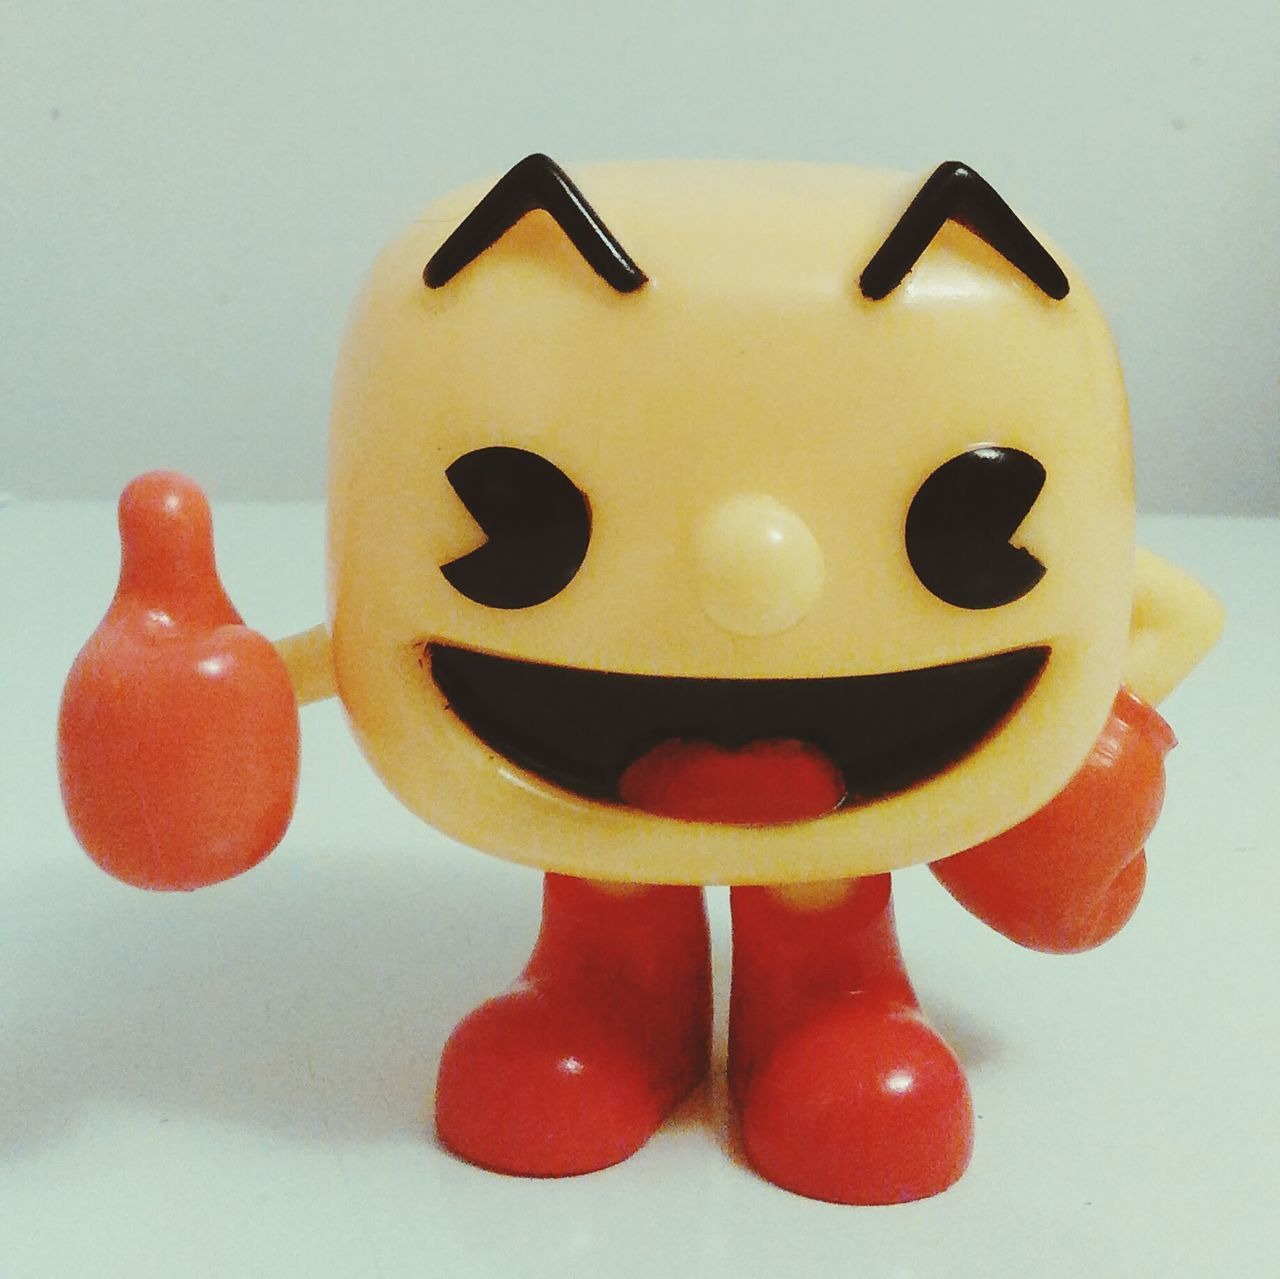 Human Representation Pacman Happy Beauty Funkopopvinyl Close-up Love Yellow Indoors  Lovelovelove Funkolove Funko Smile Classicgaming Eighties Enjoying Life Absolutely Incredible Amazing EyeEm Gallery Single Object Happy :) No People Pacman Face Is A Winning Face. Pacman Number 1 Yellow Color EyeEmNewHere